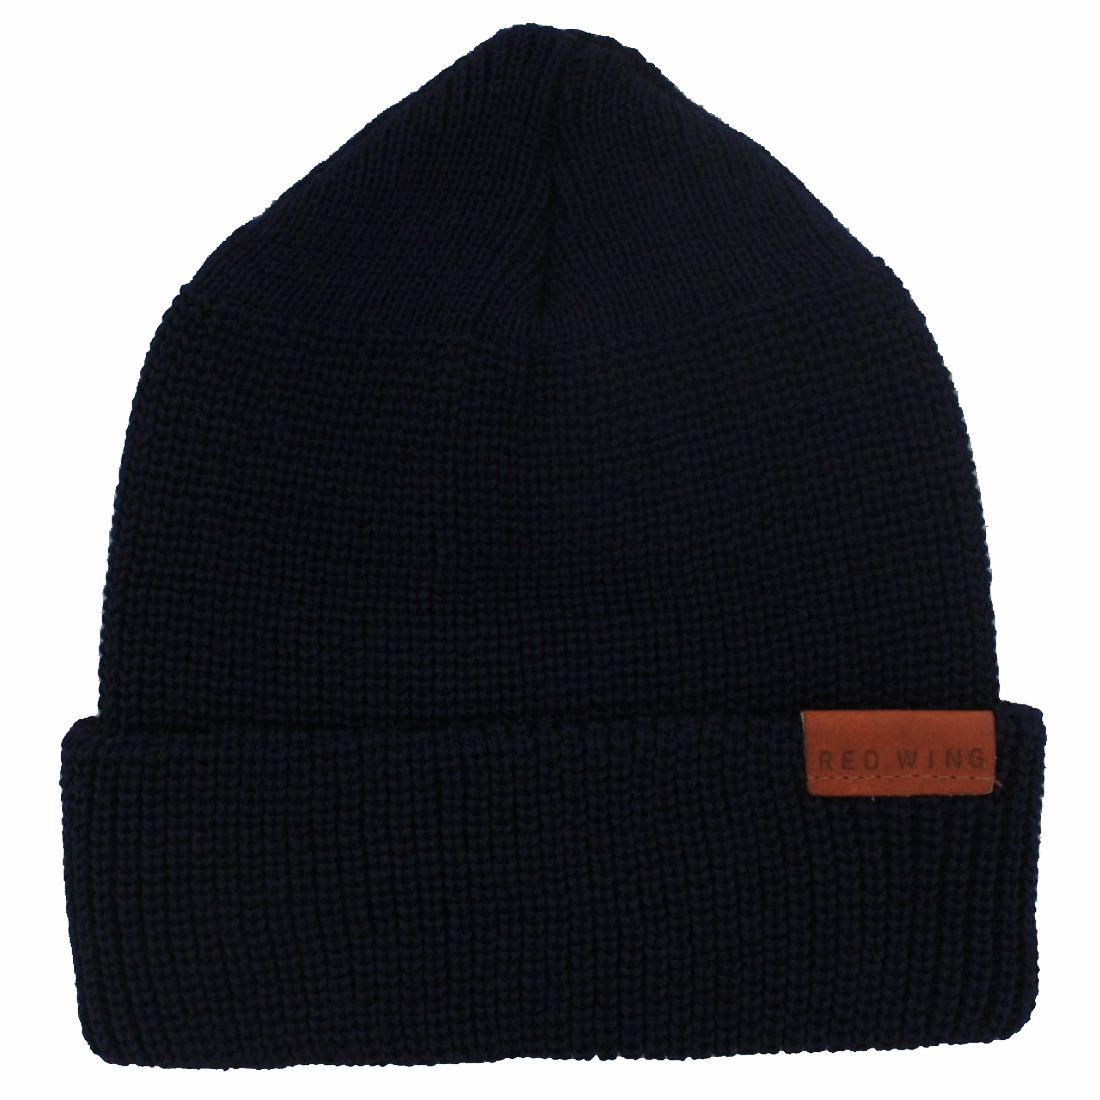 Red Wing Shoes 97490 MERINO WOOL KNIT CAP Men's wool hat - blue